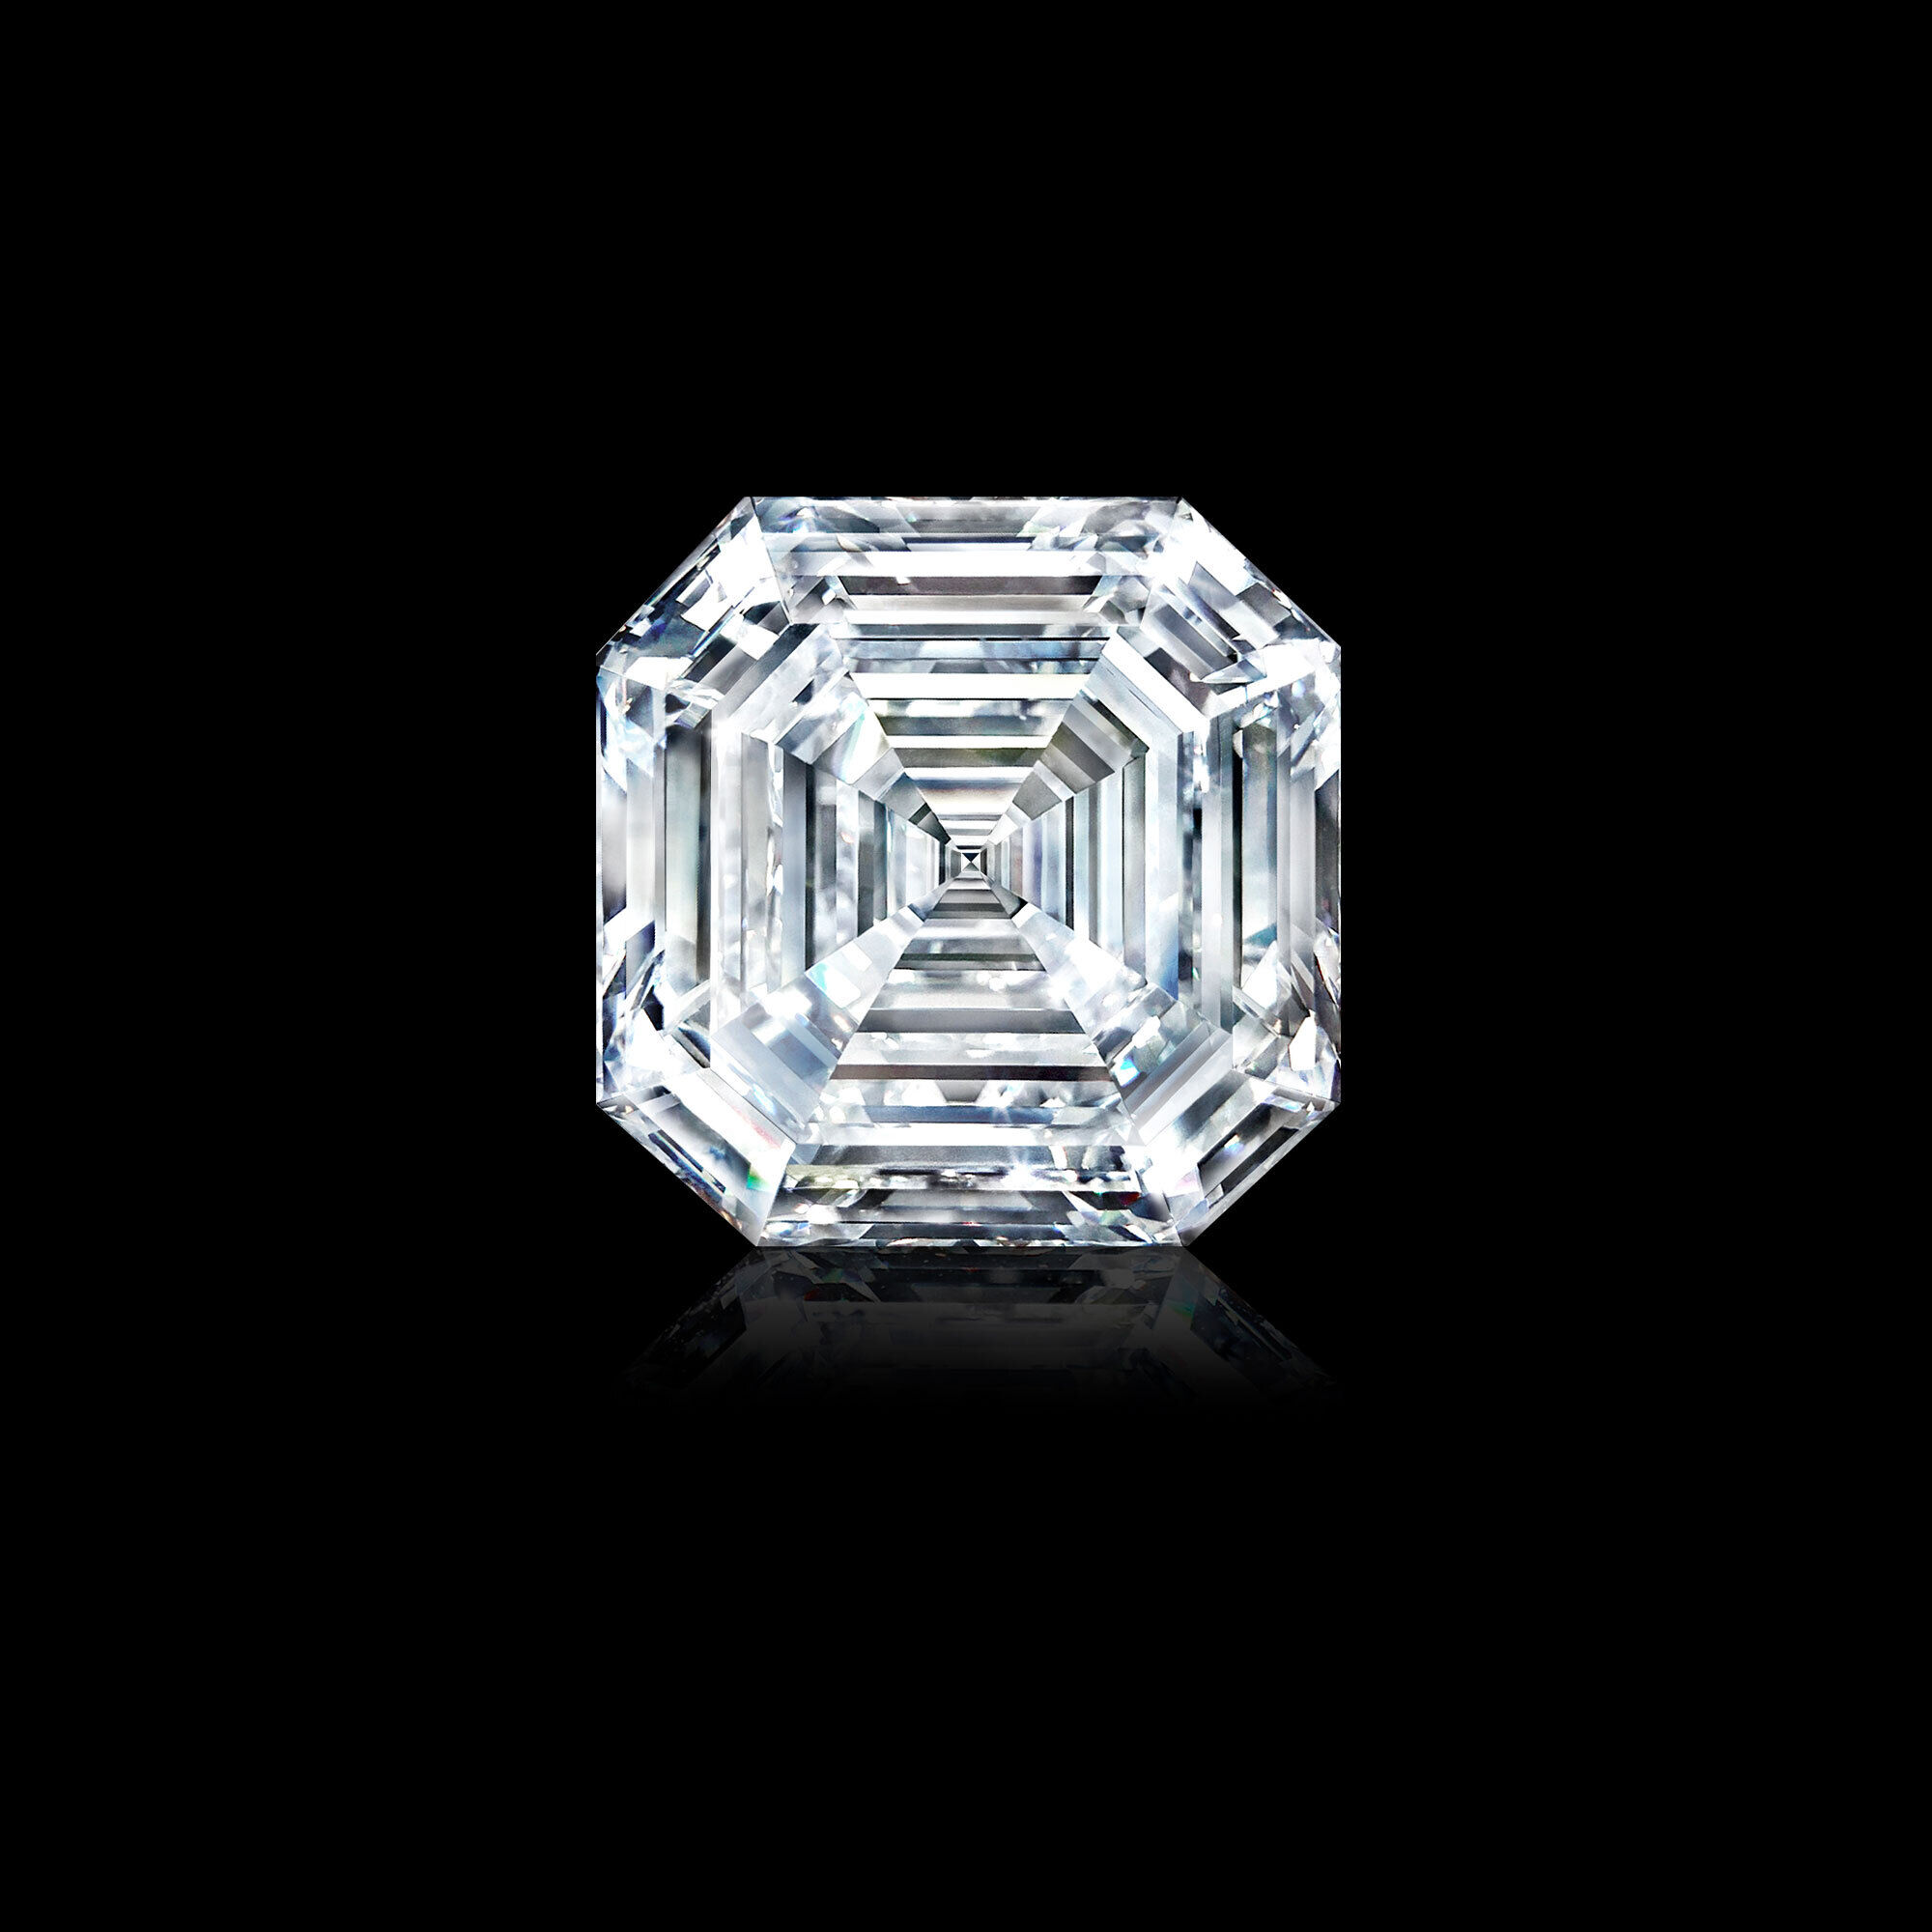 The 302.37 carat Graff Lesedi La Rona square emerald cut diamond